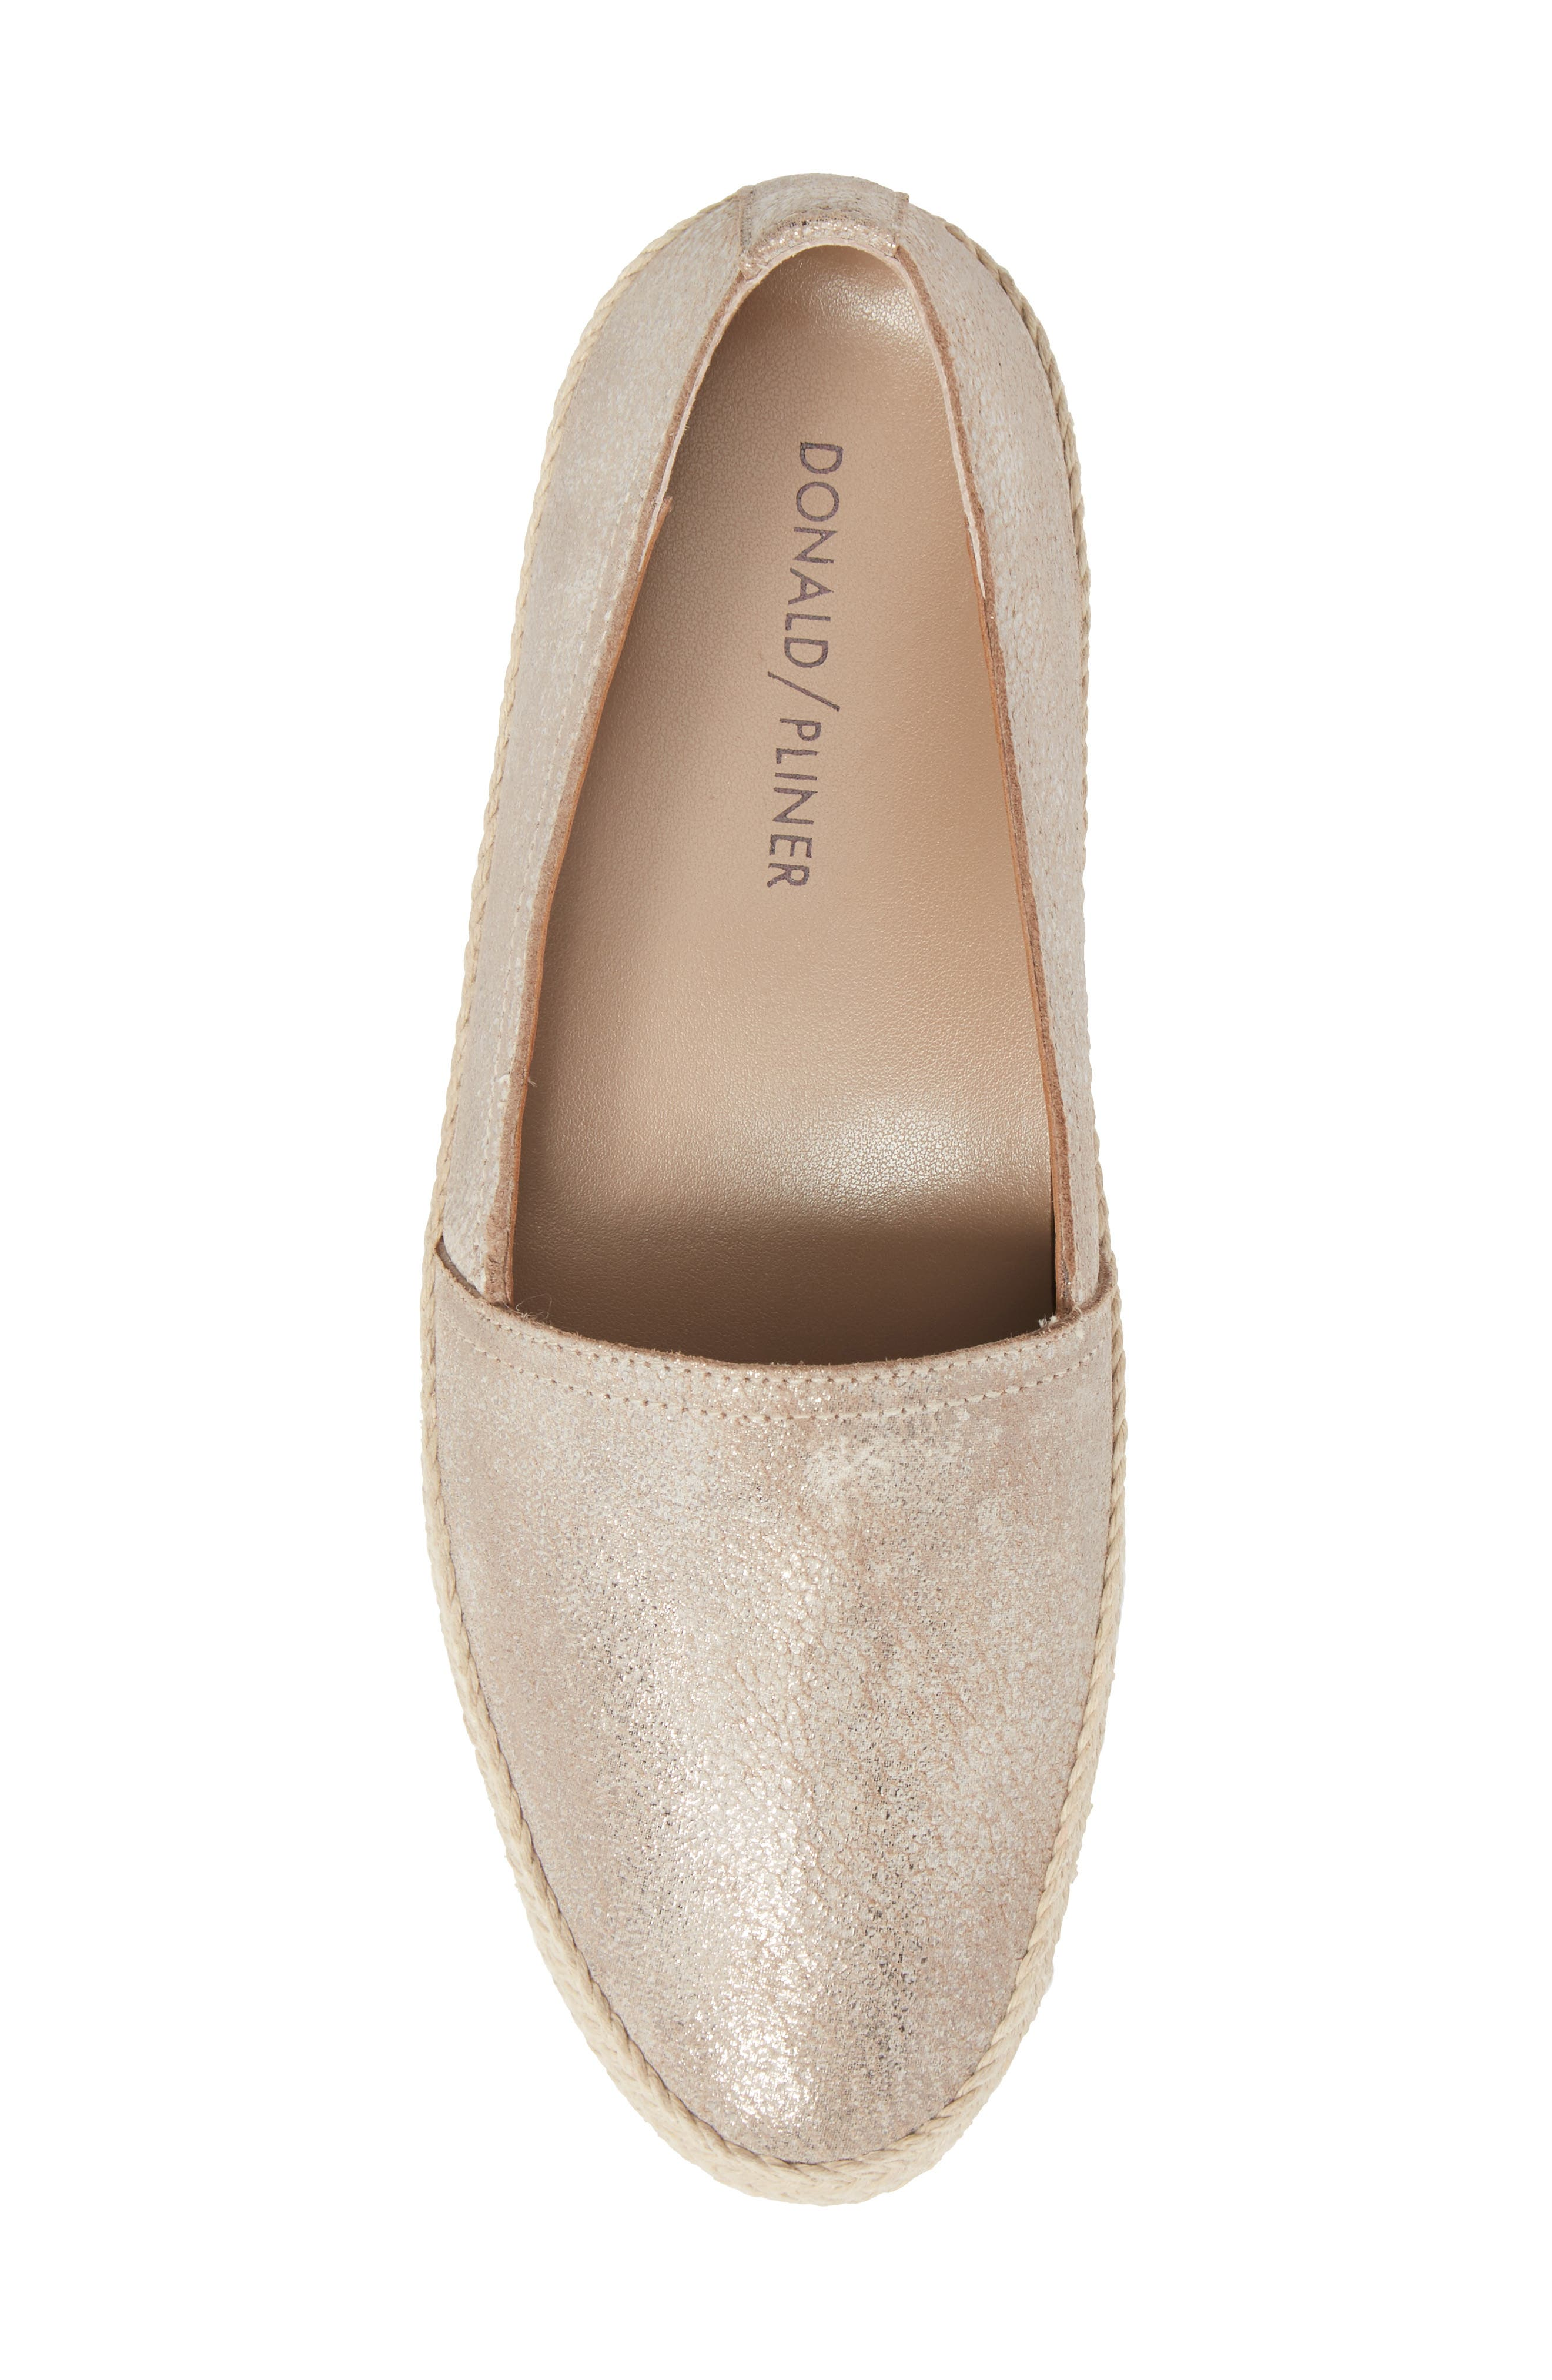 Palm Slip-On Sneaker,                             Alternate thumbnail 5, color,                             Taupe Fabric